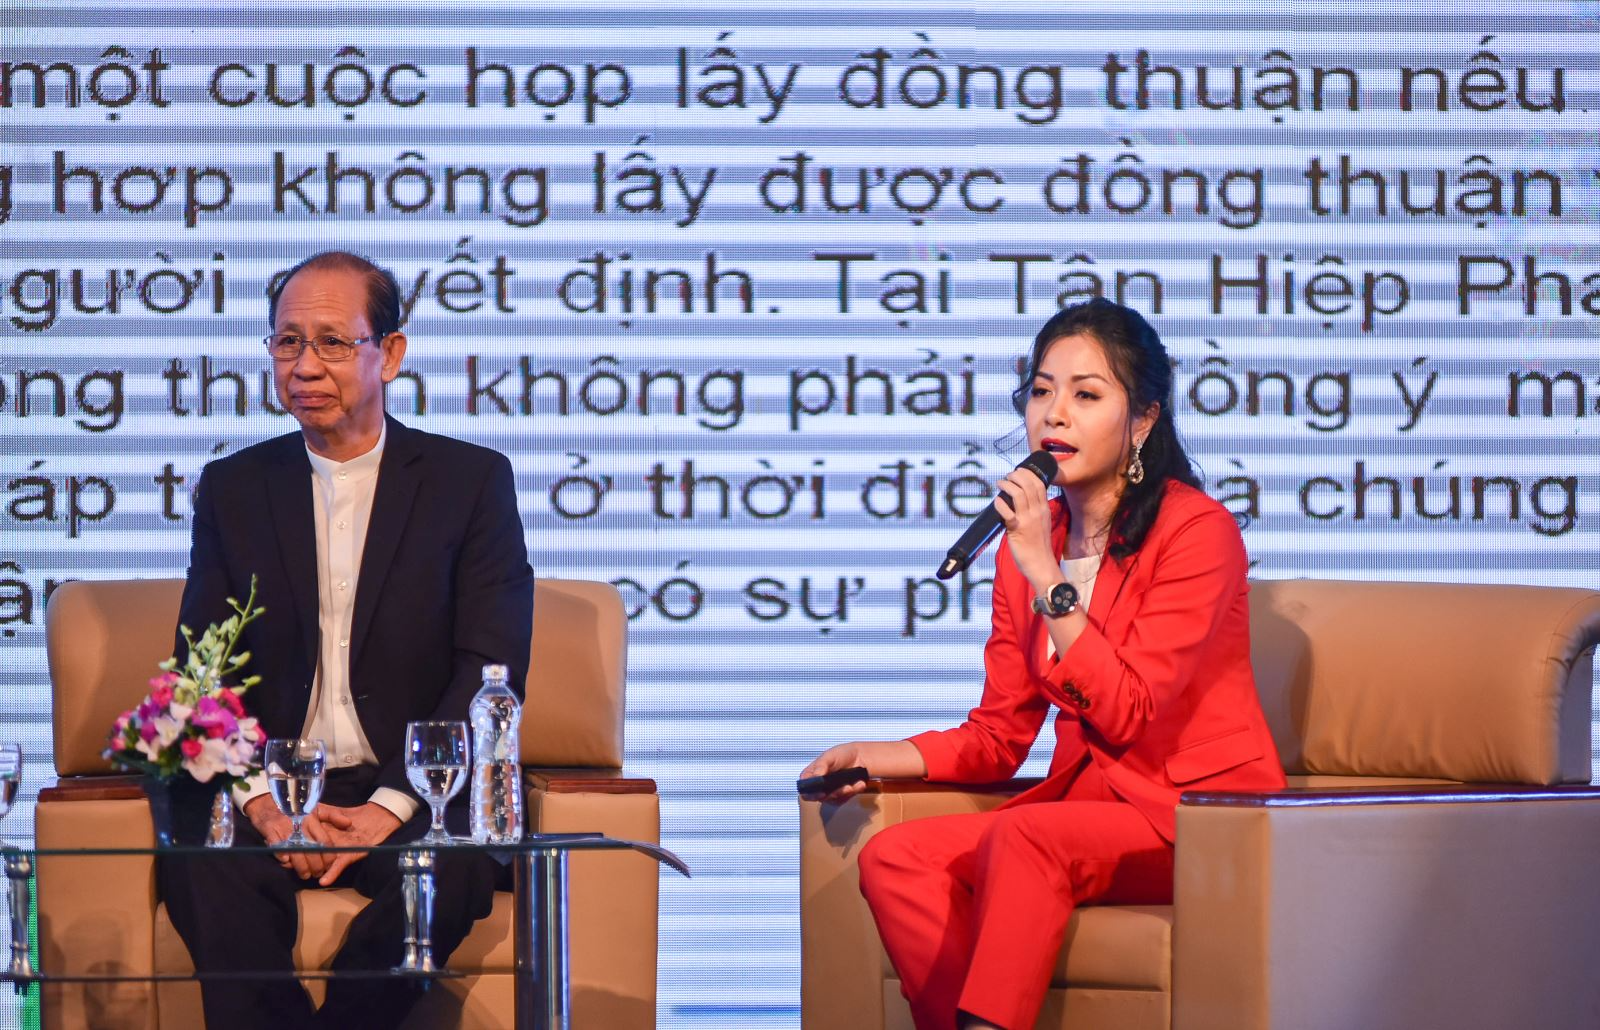 phuong uyen tran creativity along with corporate culture help promote the growth of business post covid 19